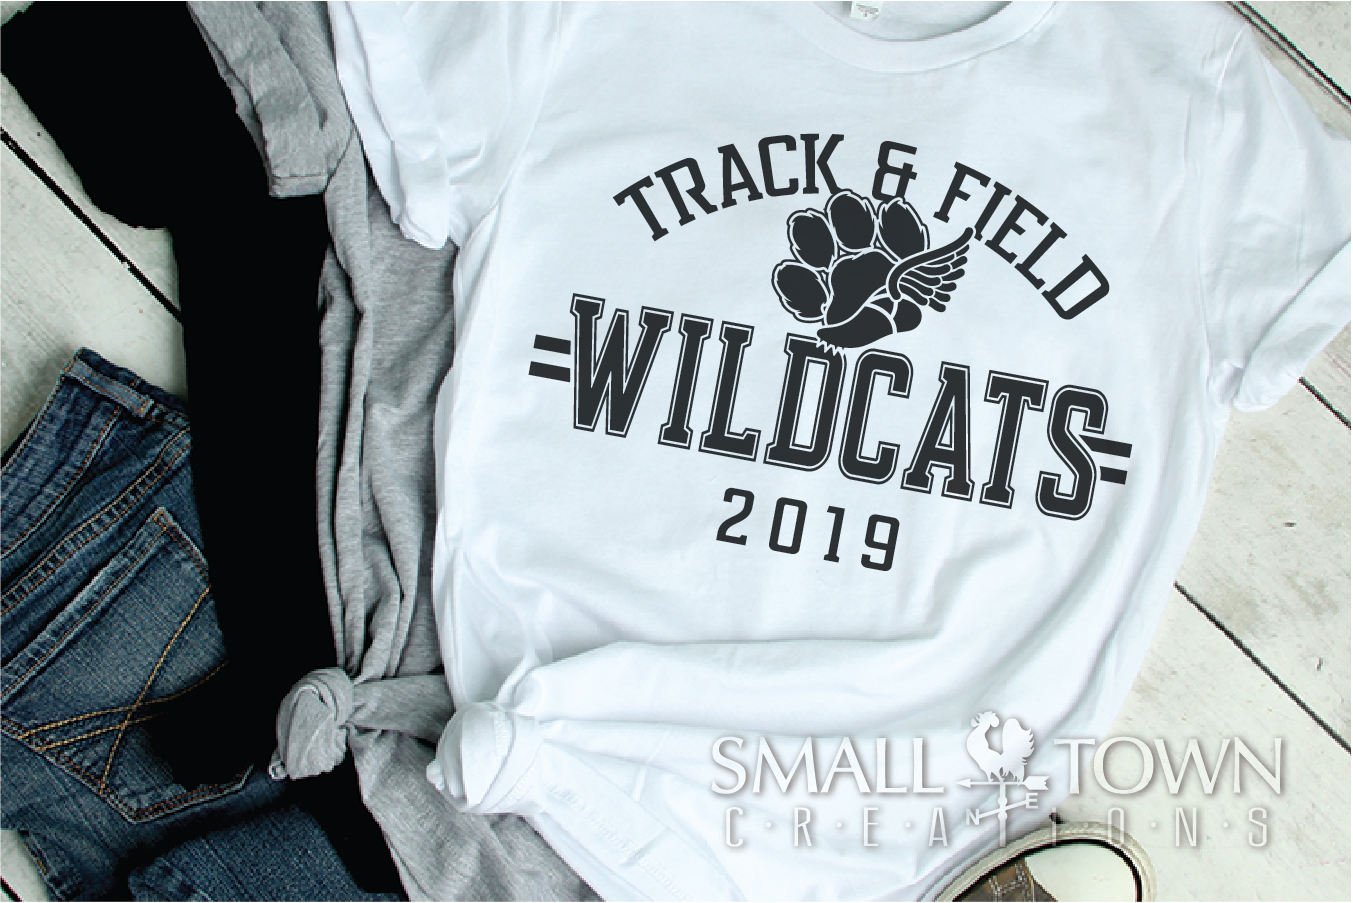 Wildcats Track and Field, Wildcat mascot, PRINT, CUT, DESIGN example image 2